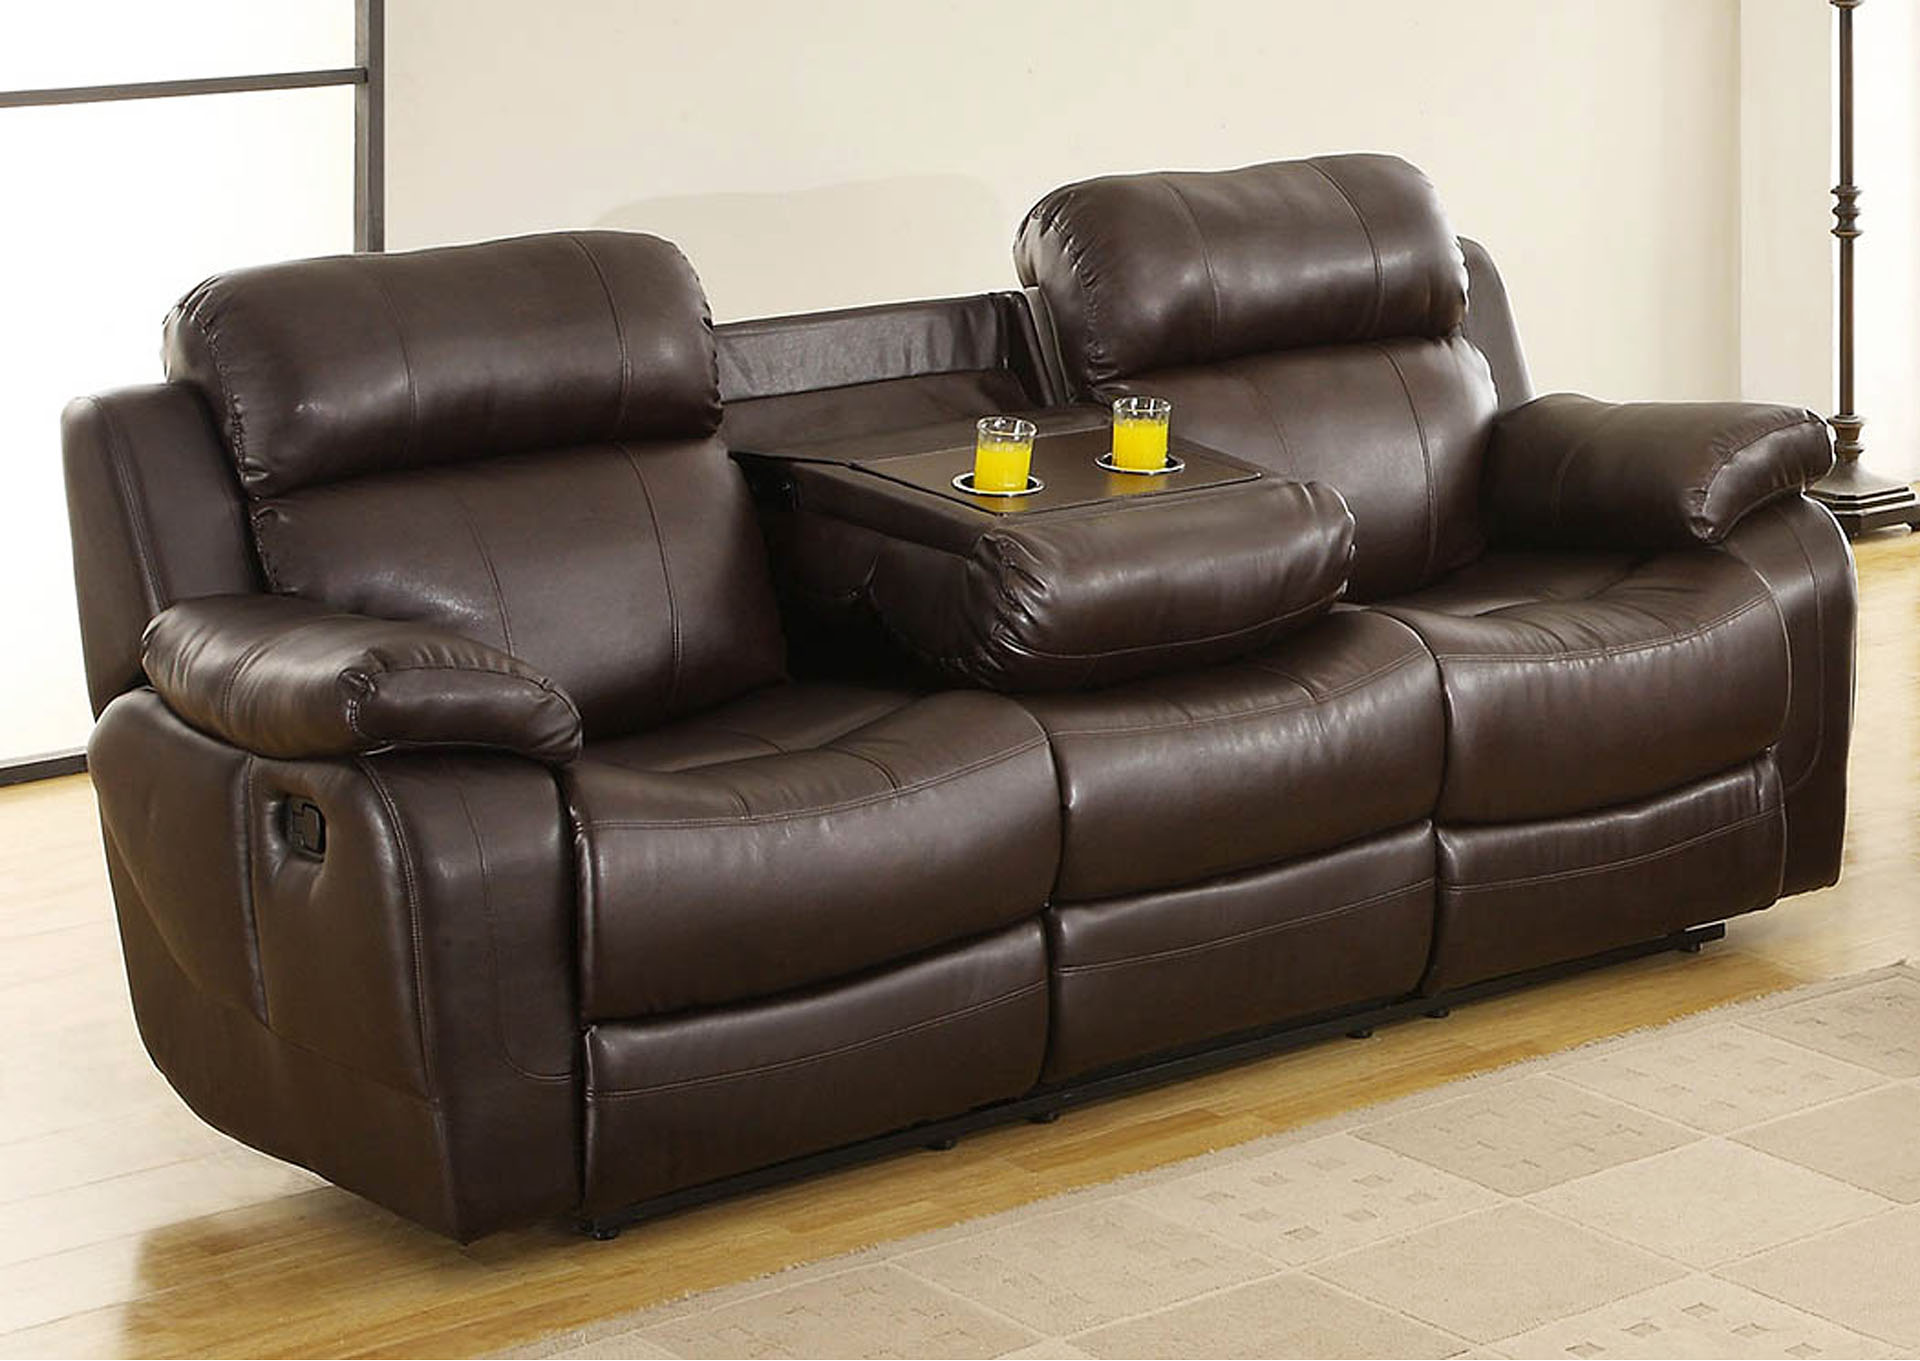 Ideal Furniture And Mattress Marille Brown Double Reclining Sofa W